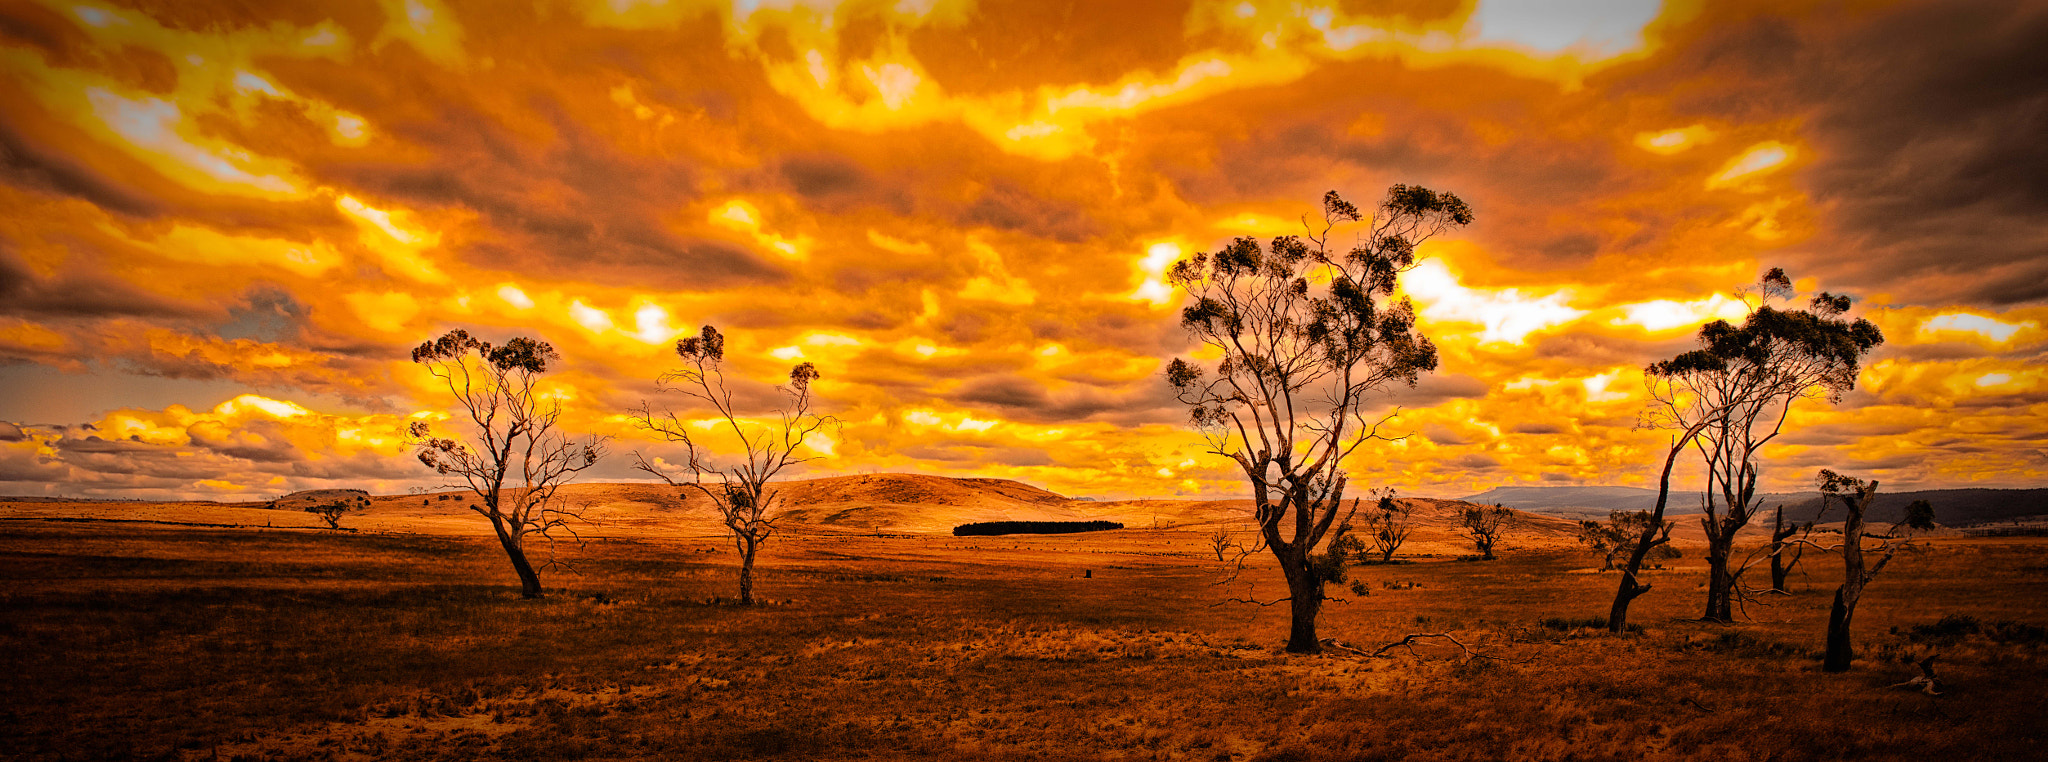 Photograph Fire in the sky by Richard Cowling on 500px